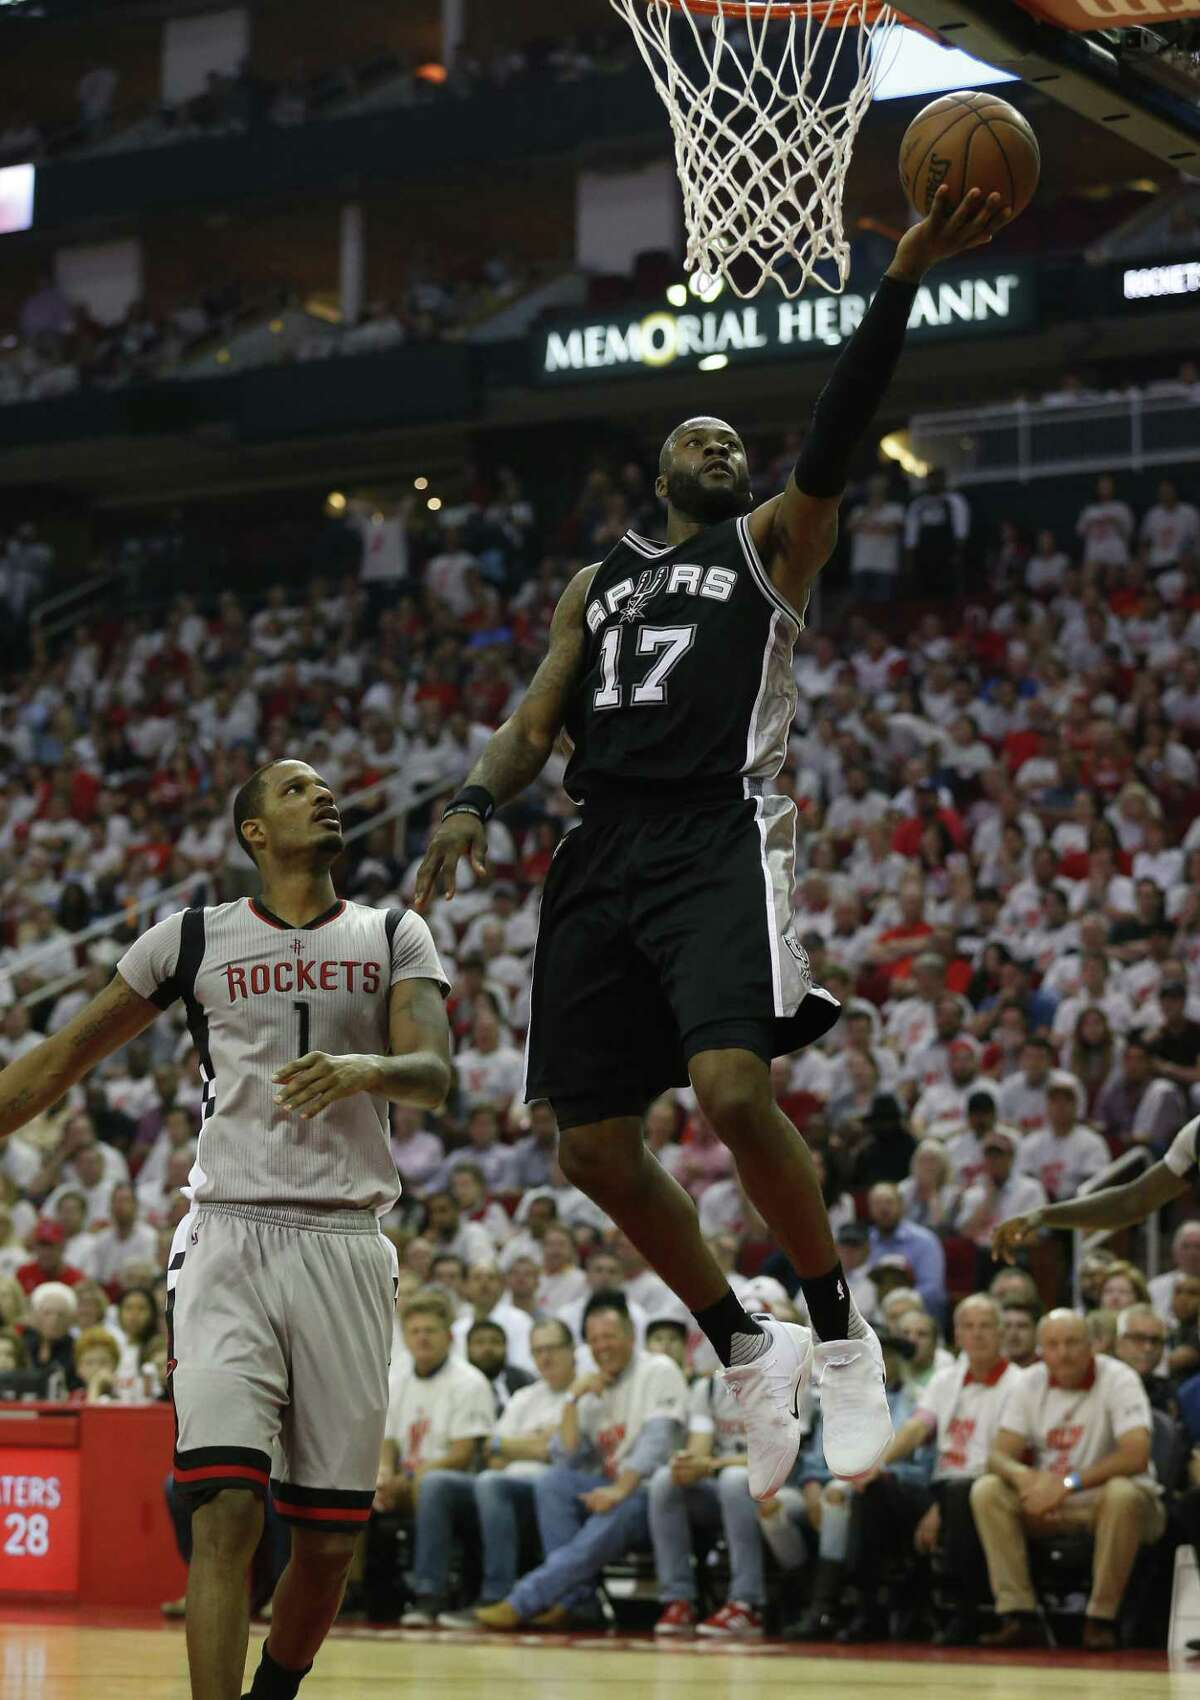 Spurs' Jonathon Simmons (17) scores against Houston Rockets' Trevor Ariza (01) in the second half of Game 4 of the Western Conference semifinals at the Toyota Center on Sunday, May 7, 2017. Rockets defeated the Spurs, 125-104, to even the series at 2-2. (Kin Man Hui/San Antonio Express-News)